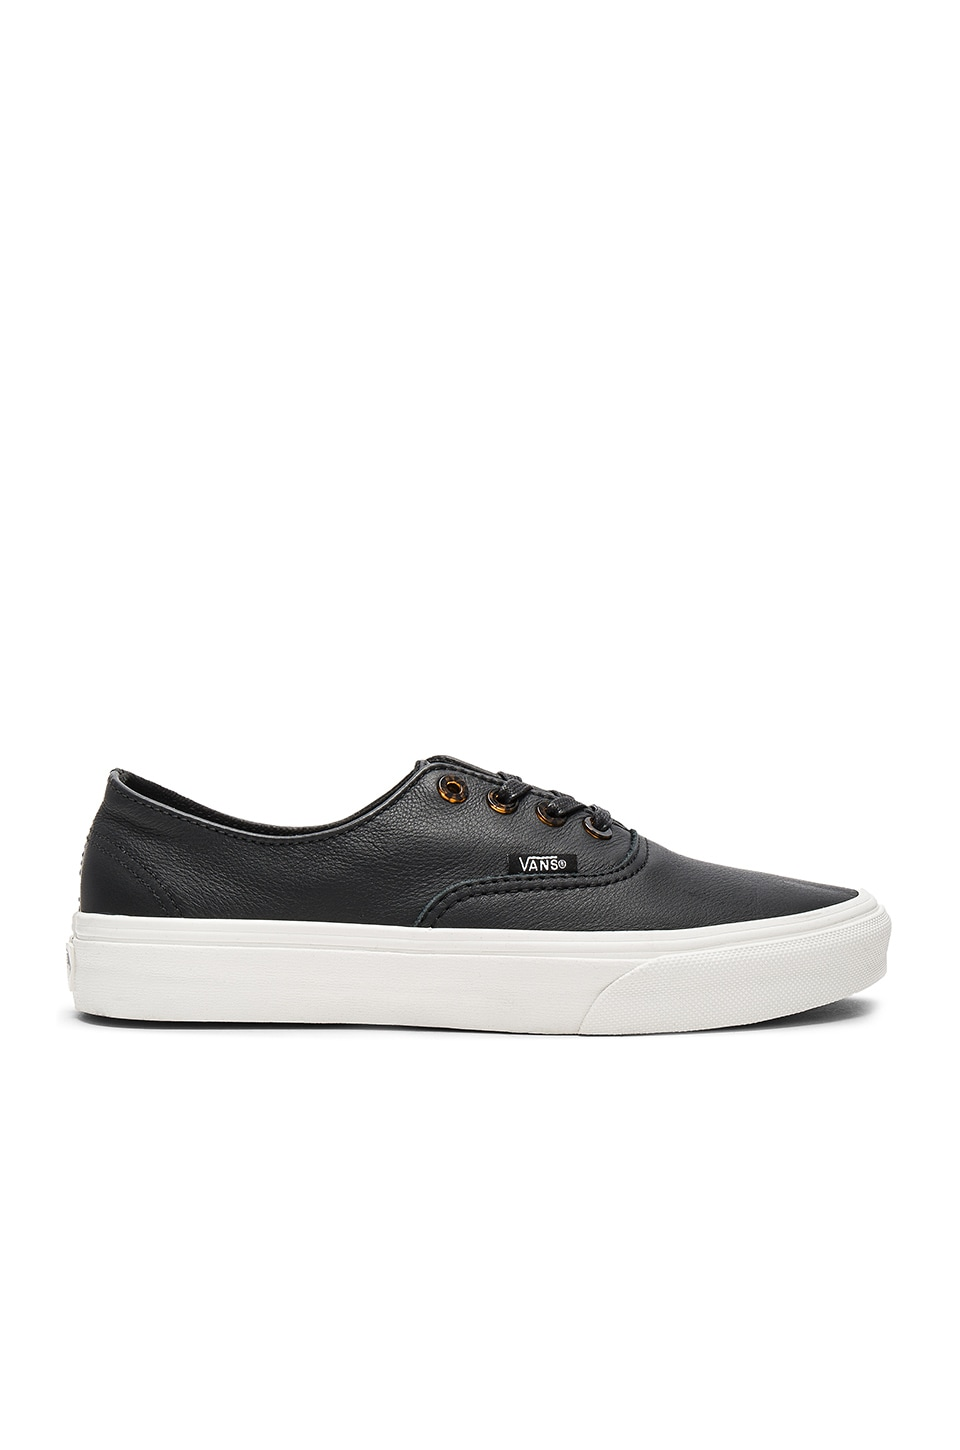 Vans Authentic Decon Sneaker in Black & Blanc De Blanc